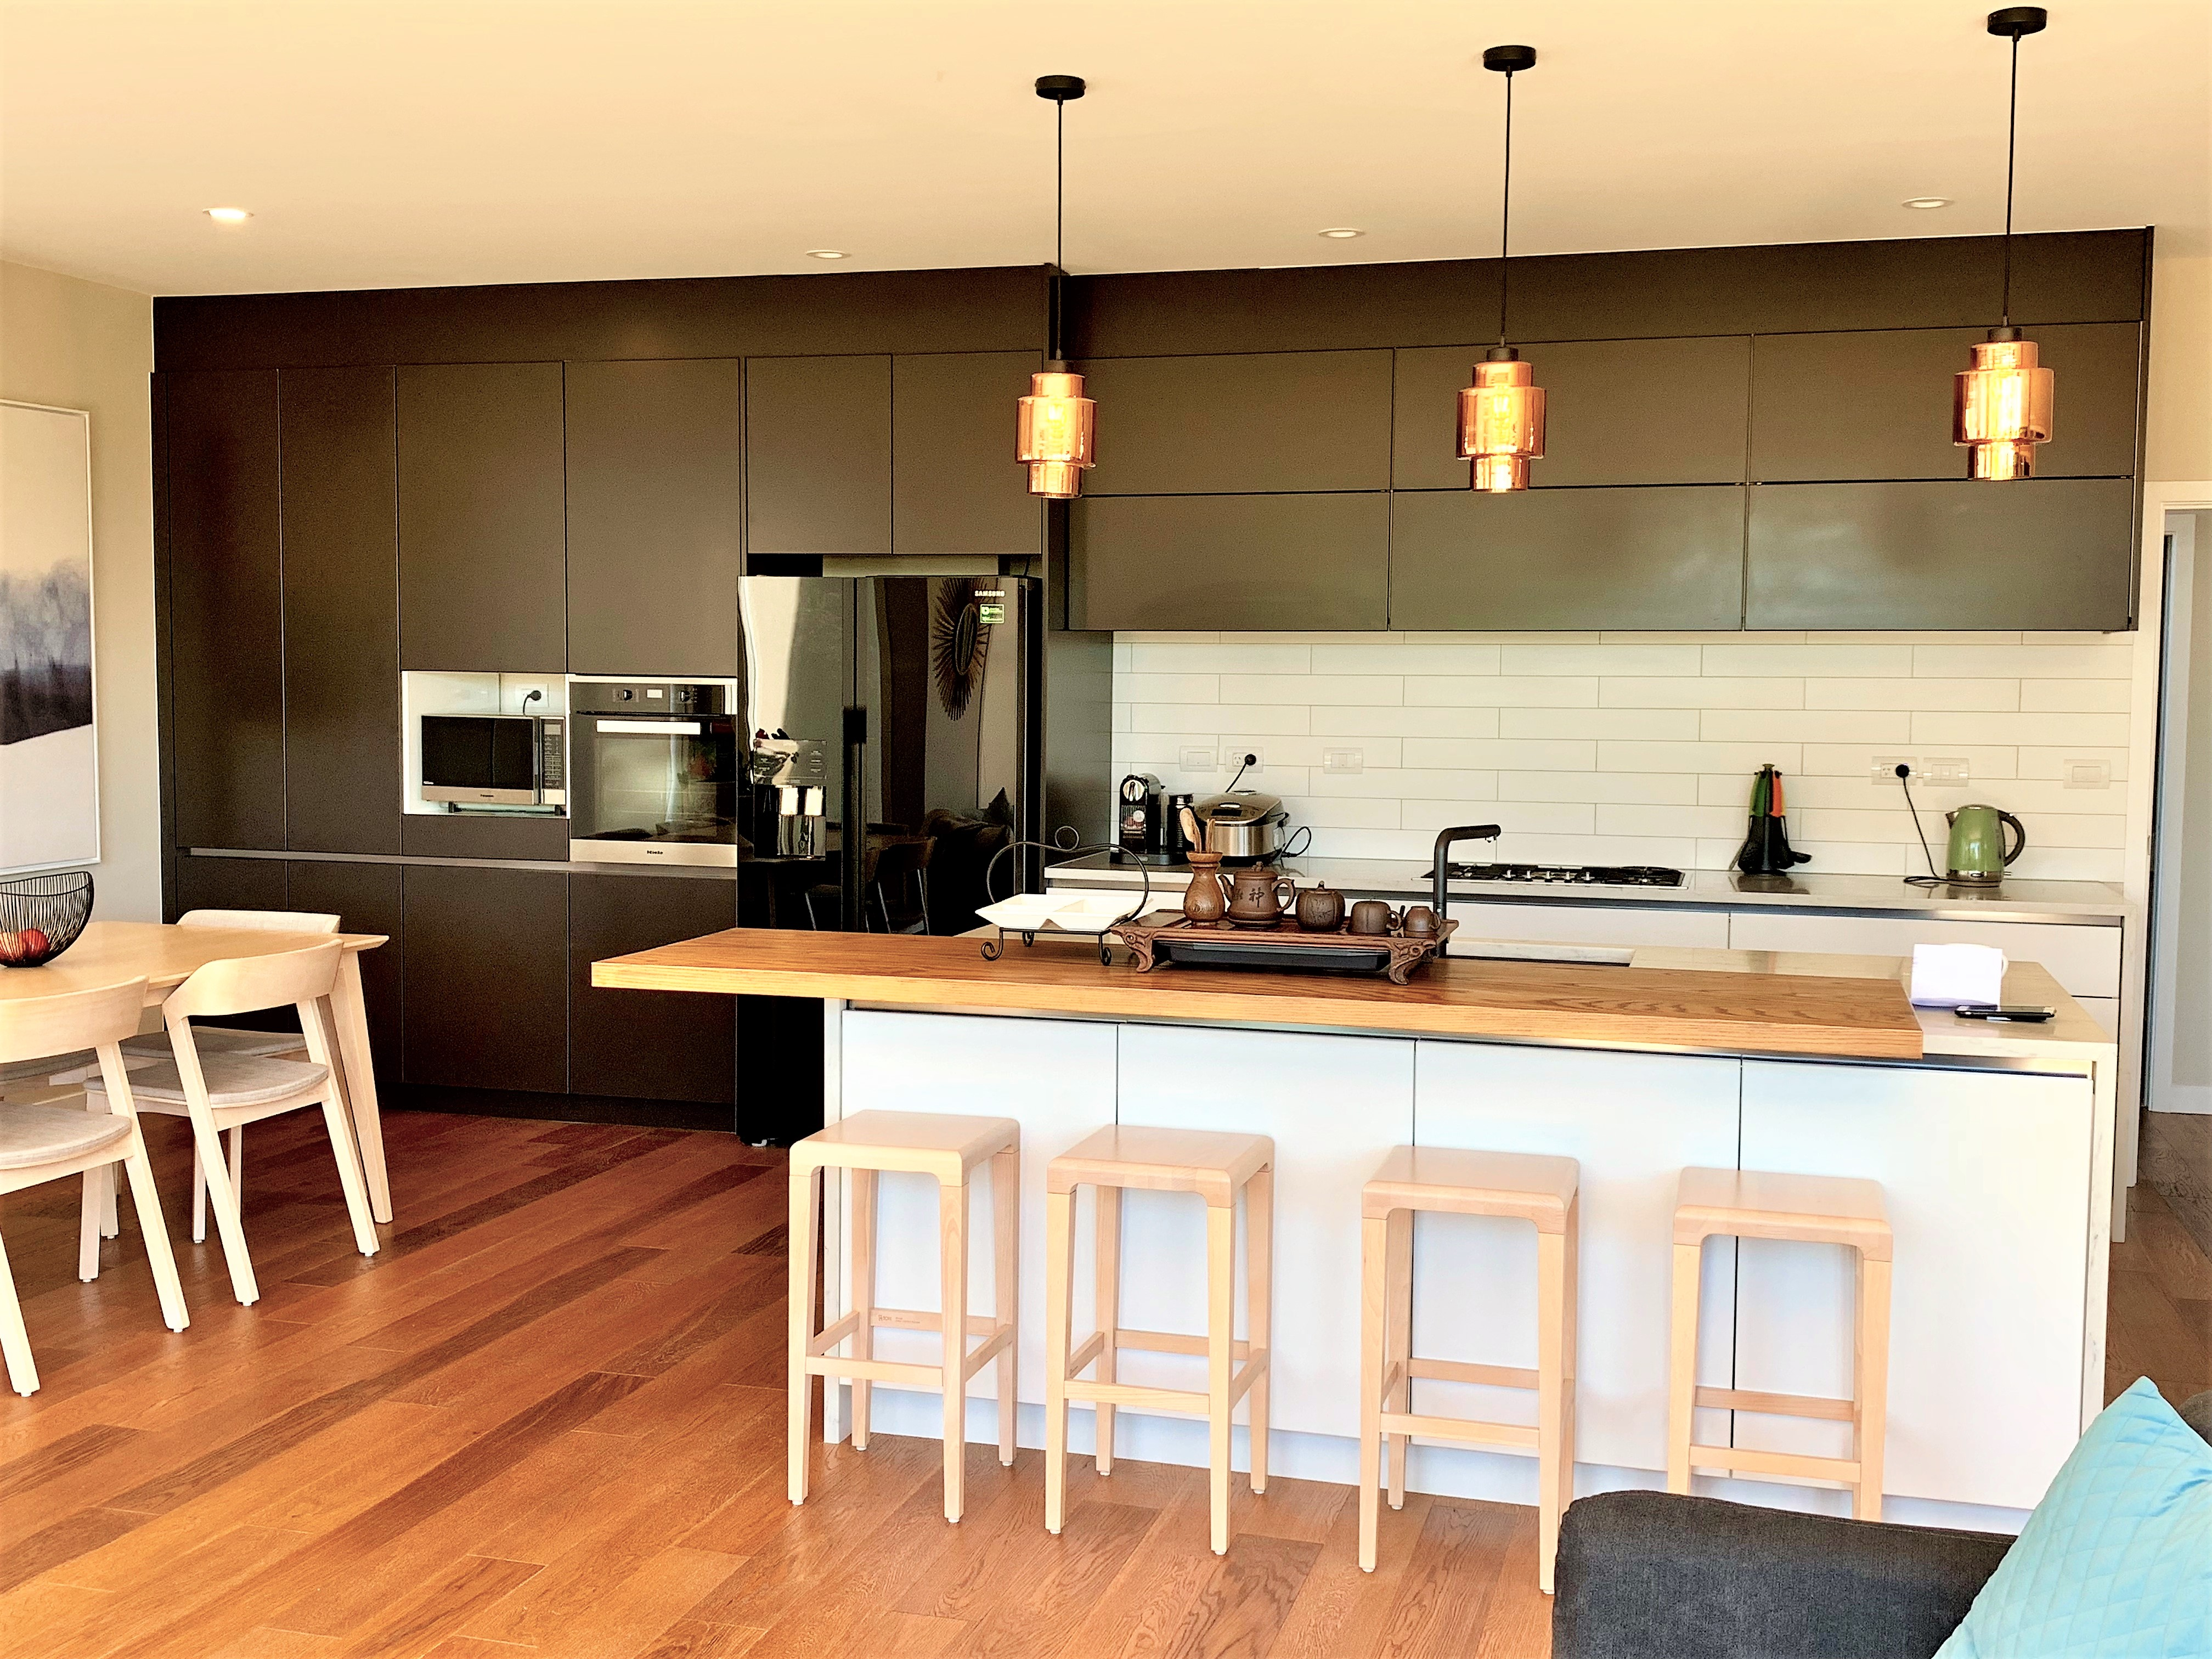 GJ-Kitchens-saint-helierss-kitchen-9-20190401222613550